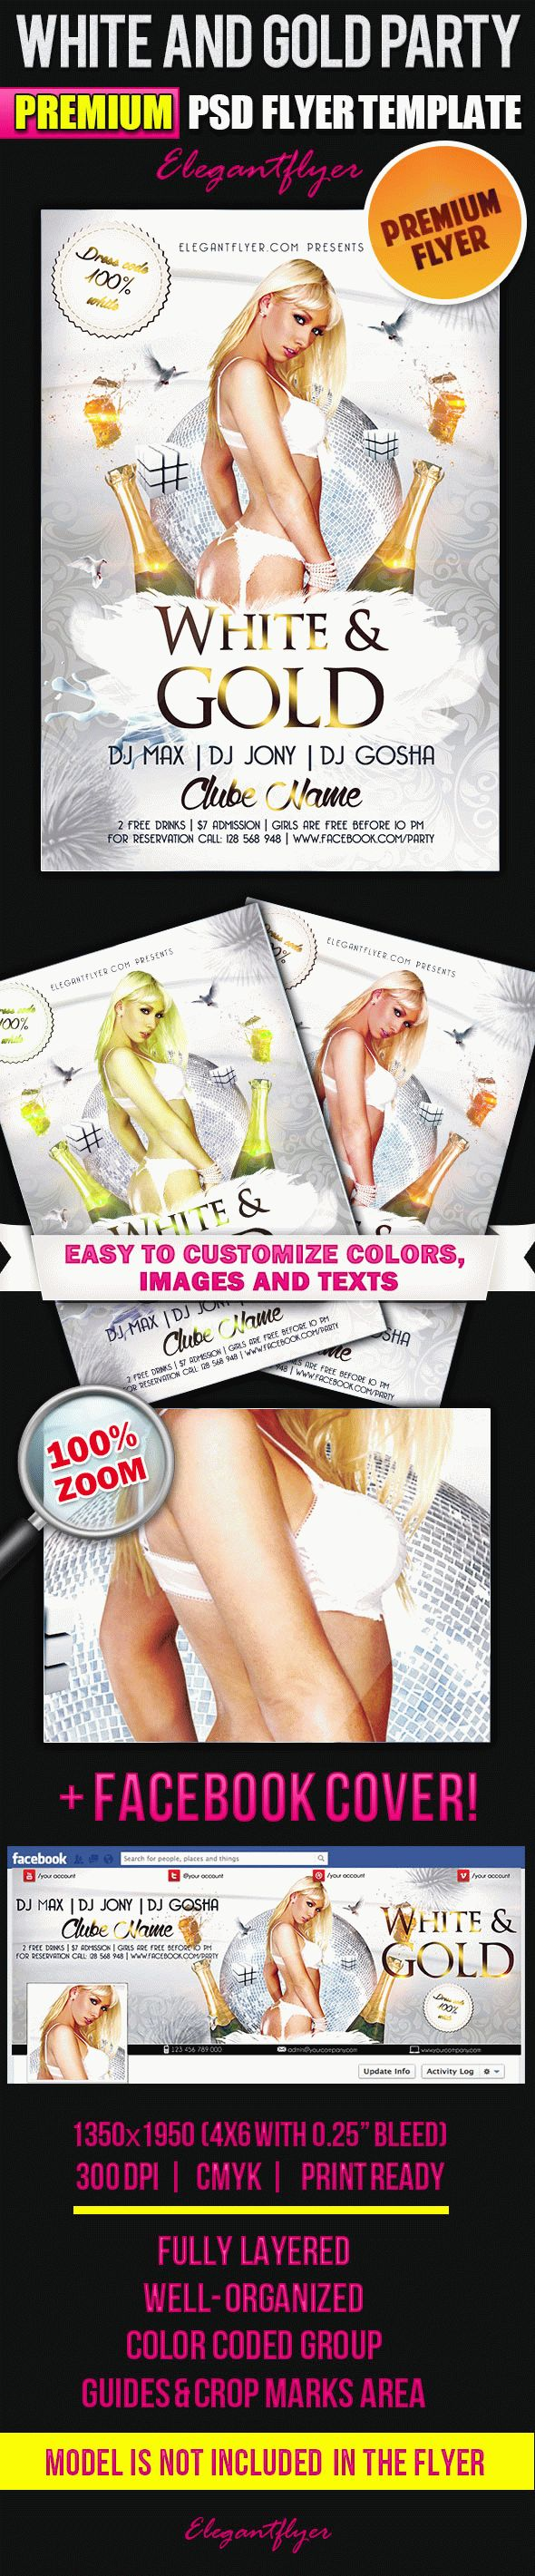 Flyer Template for White and Gold